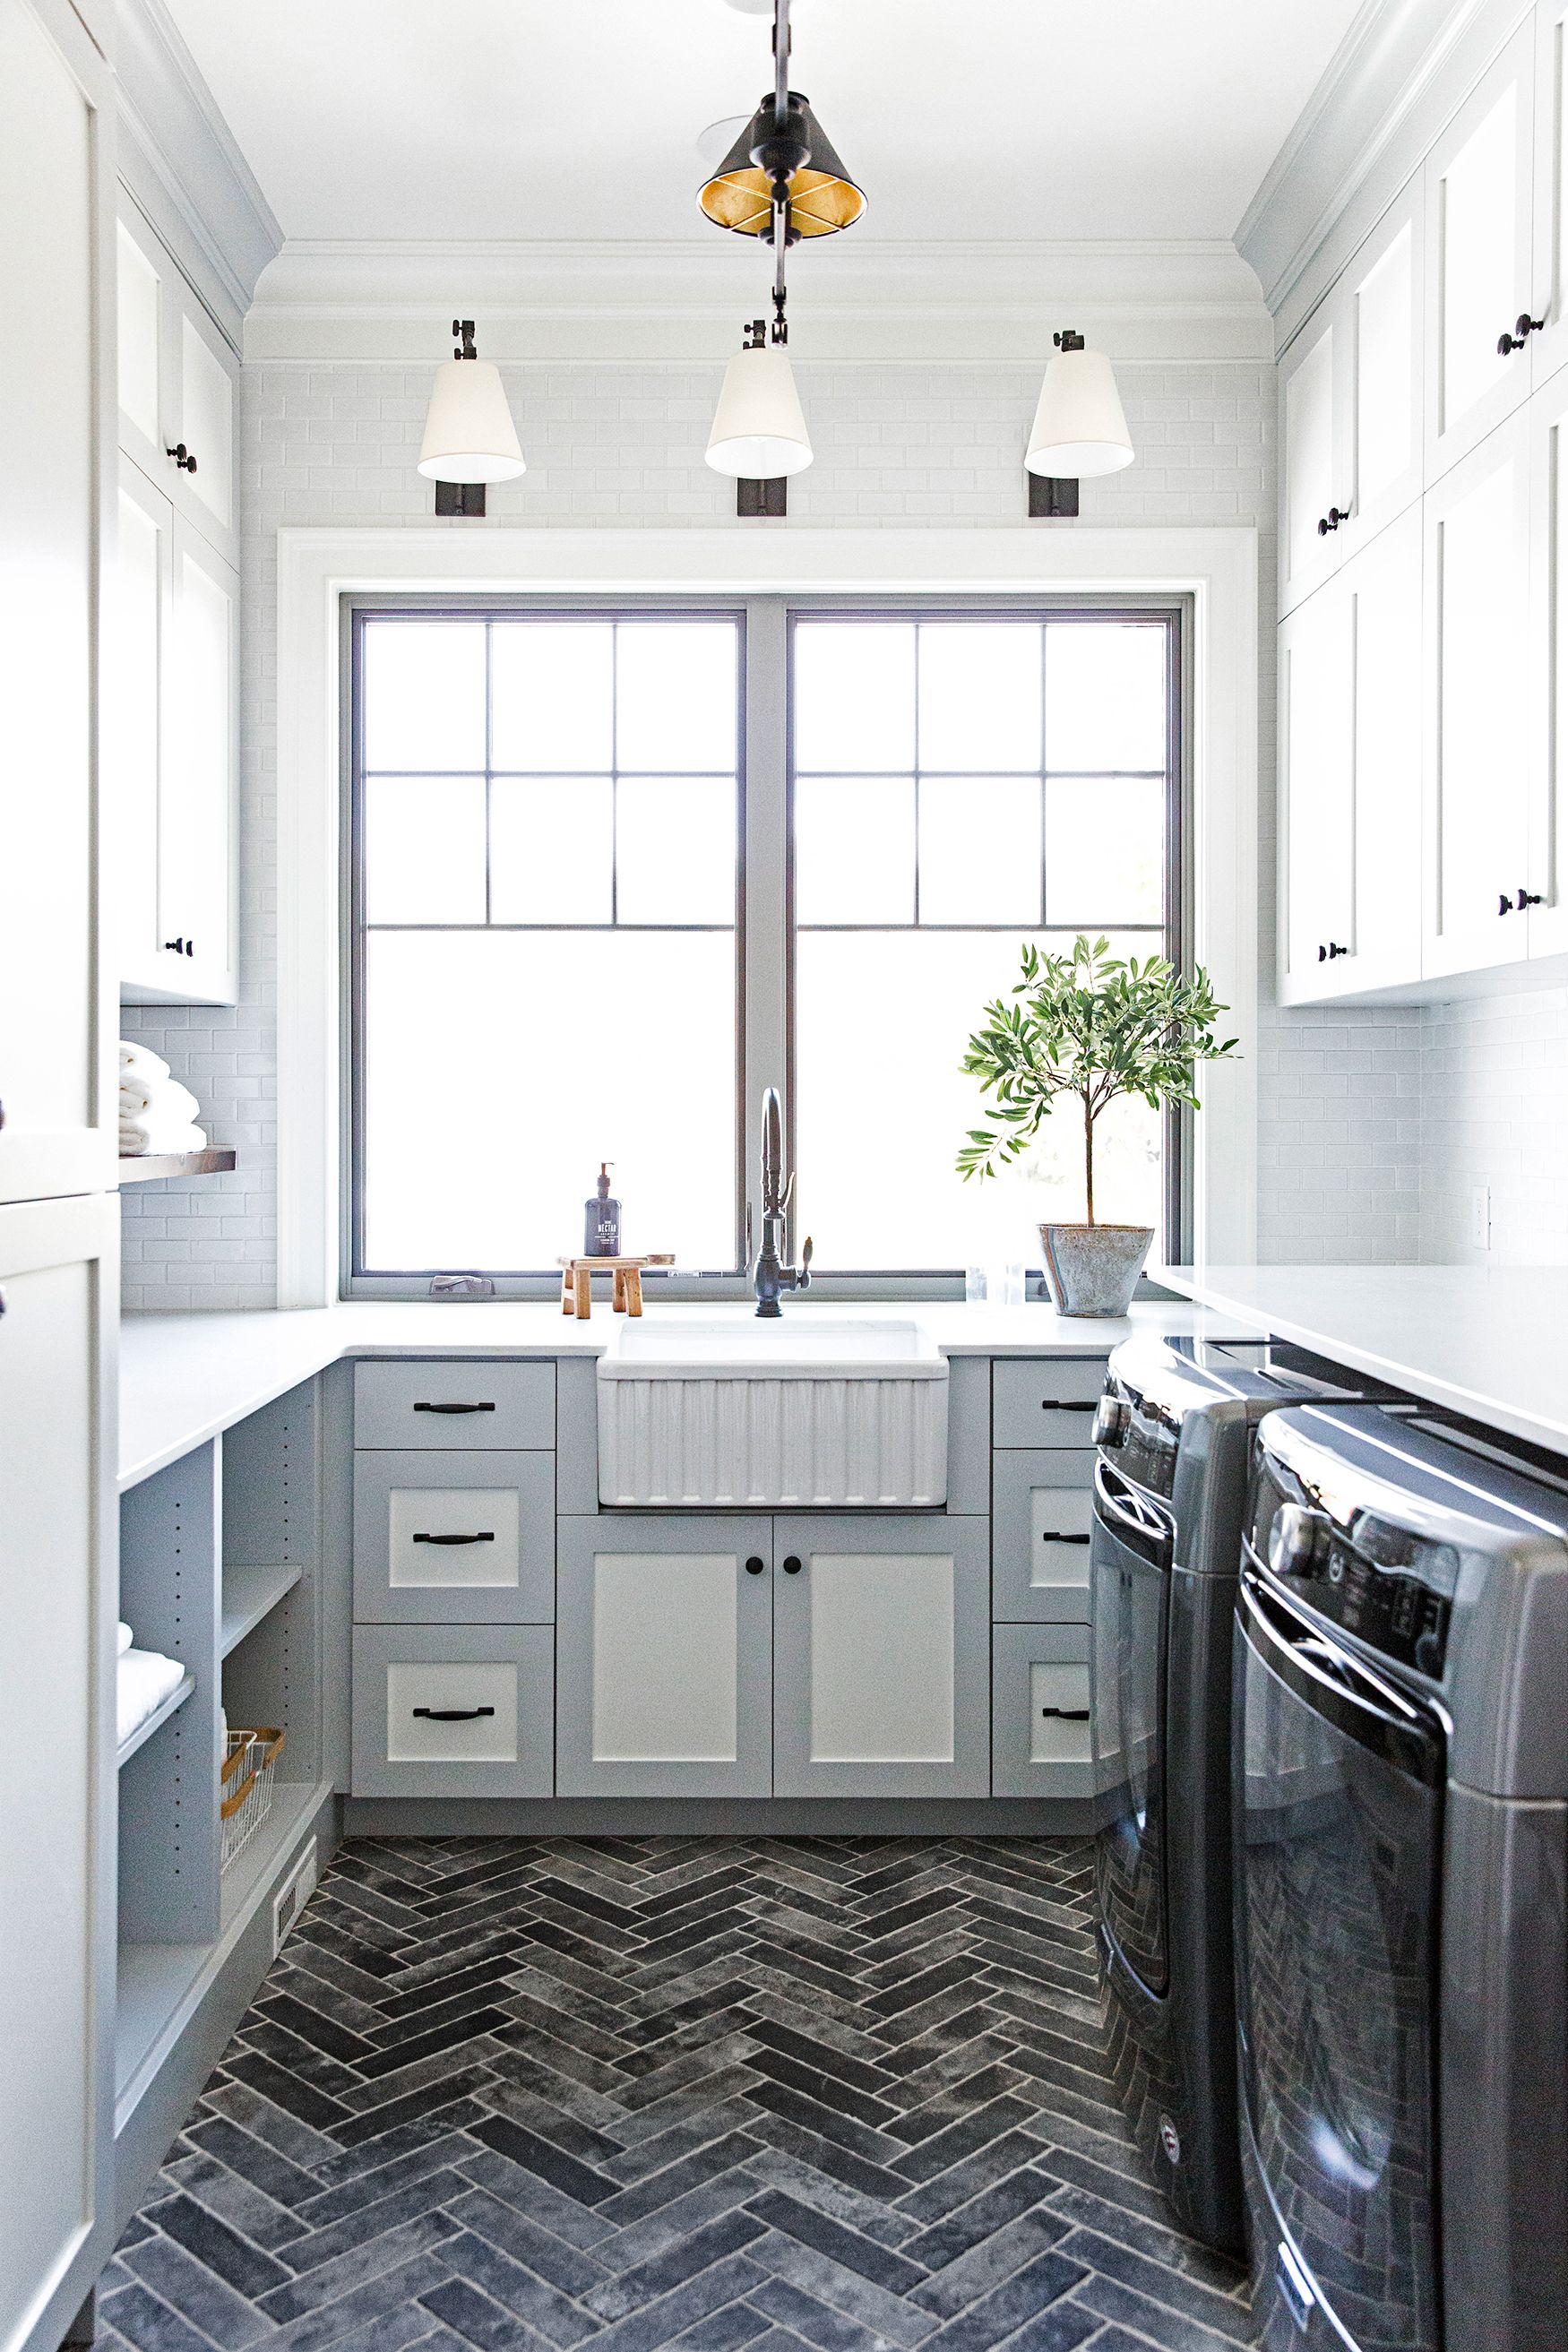 25 small laundry room ideas small laundry room storage tips on paint for laundry room floor ideas images id=93154